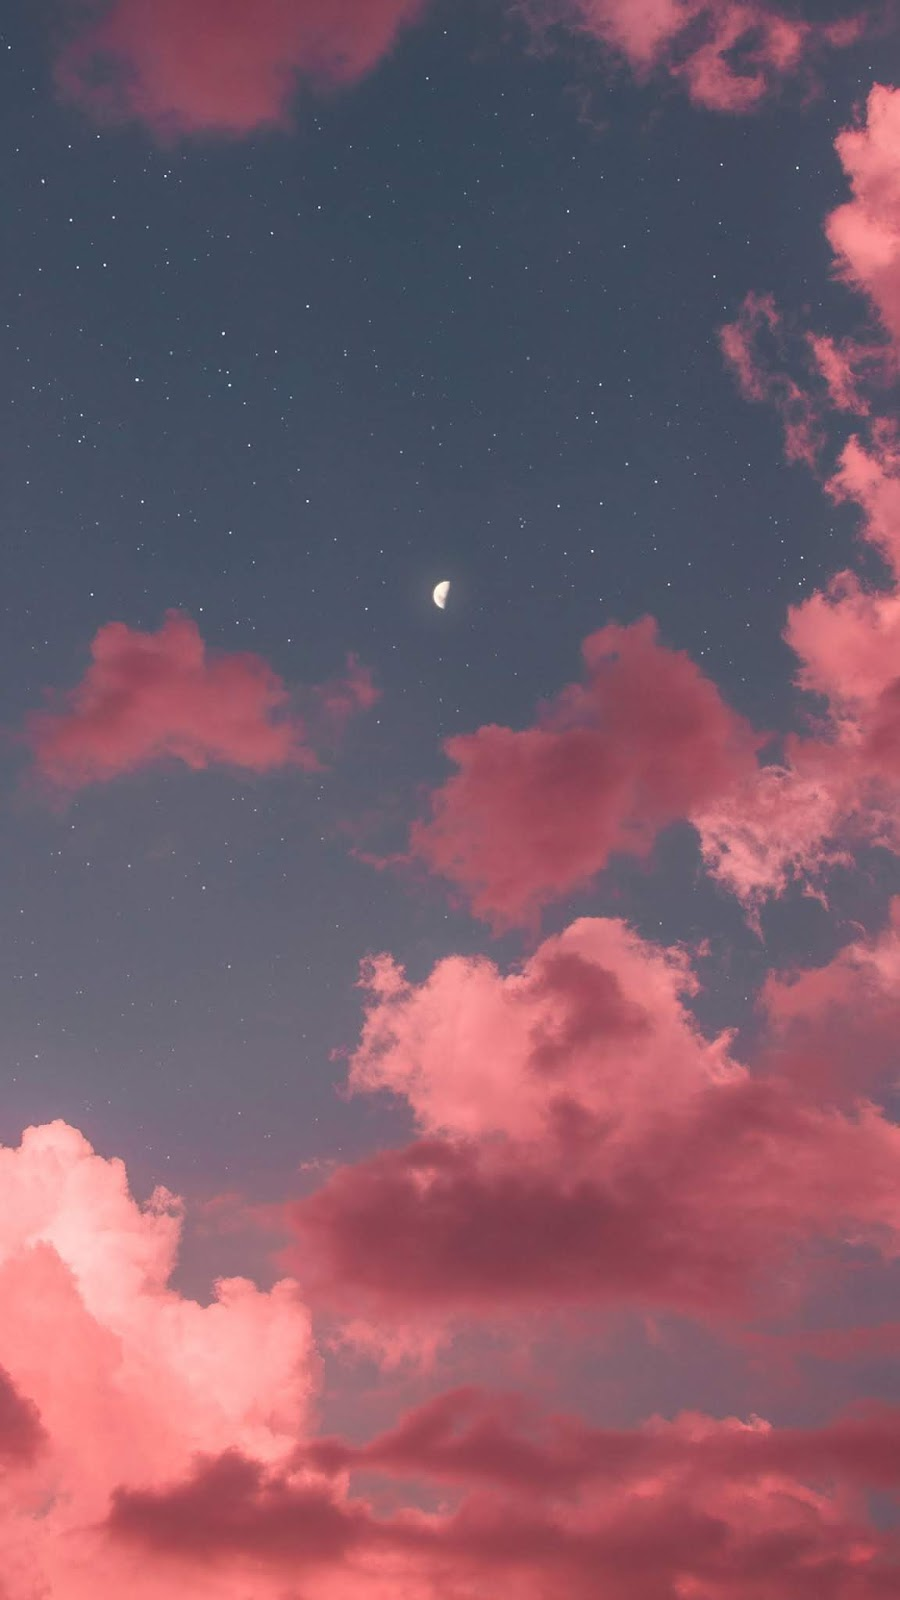 Half moon in the pink sky